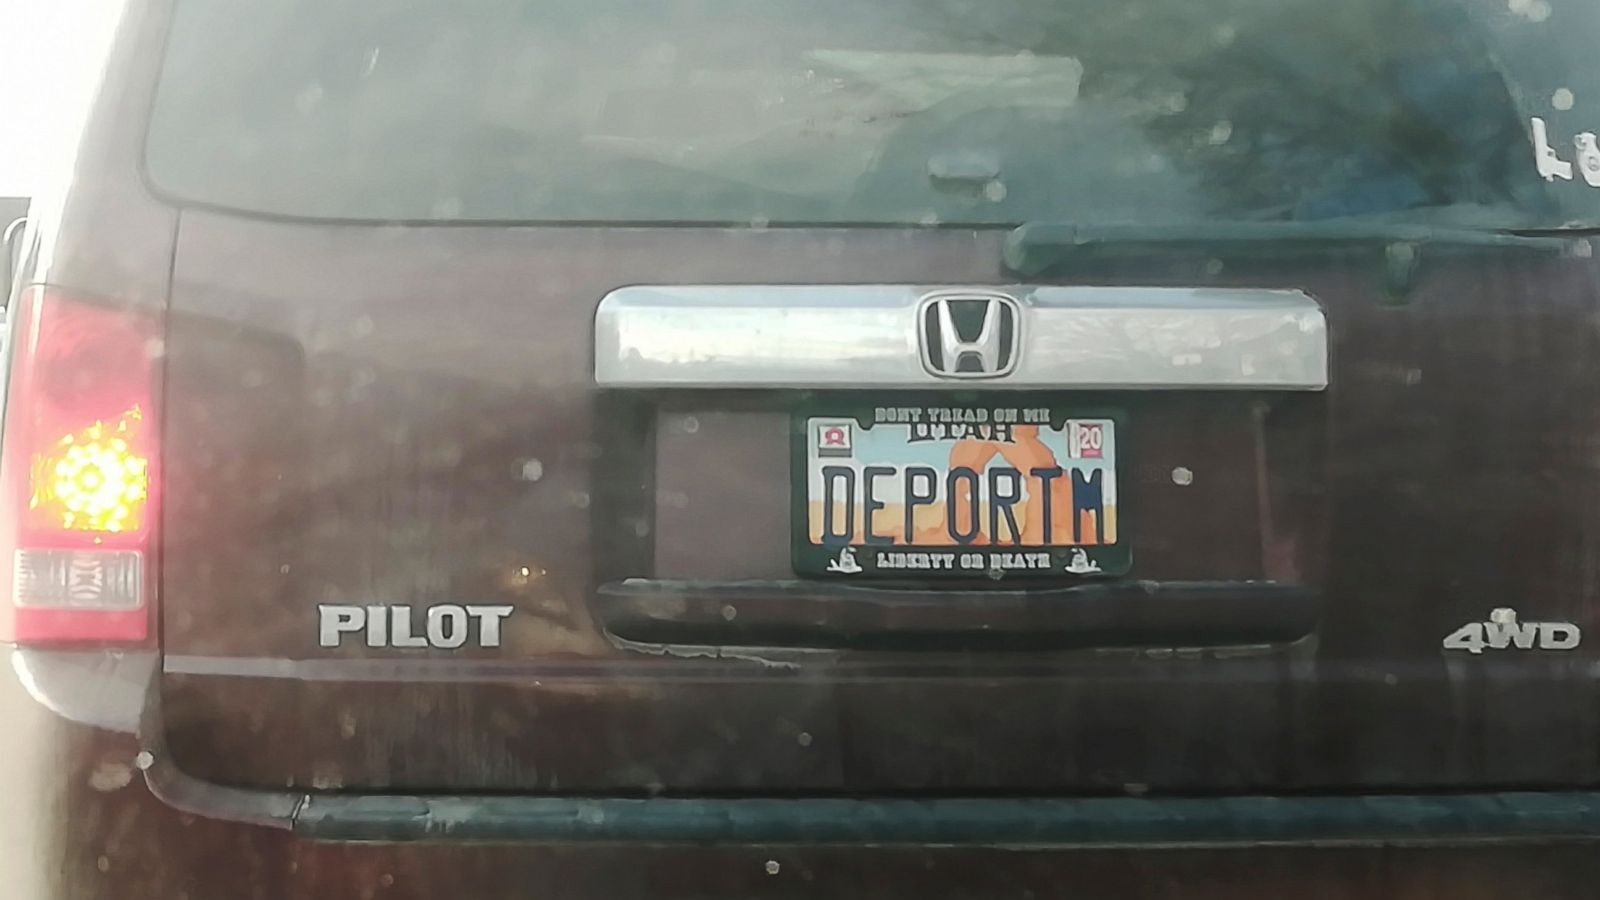 Utah Eyes Personalized License Plates After Deport Uproar Abc News Images, Photos, Reviews